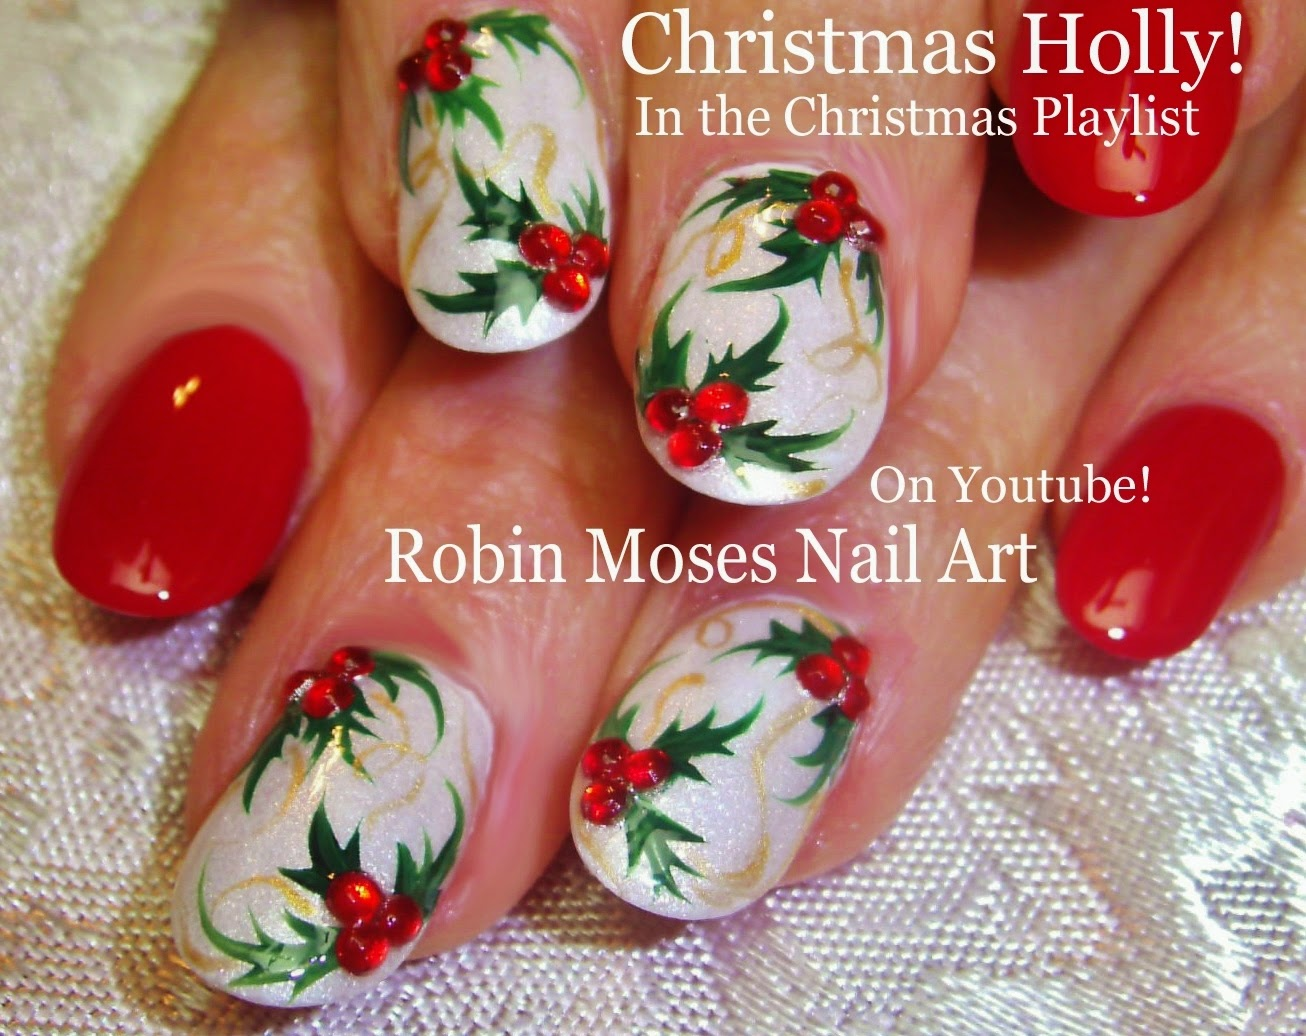 christmas nails xmas nails xmas nail art holly nails holly design cute holly christmas nail art design tutorial diy